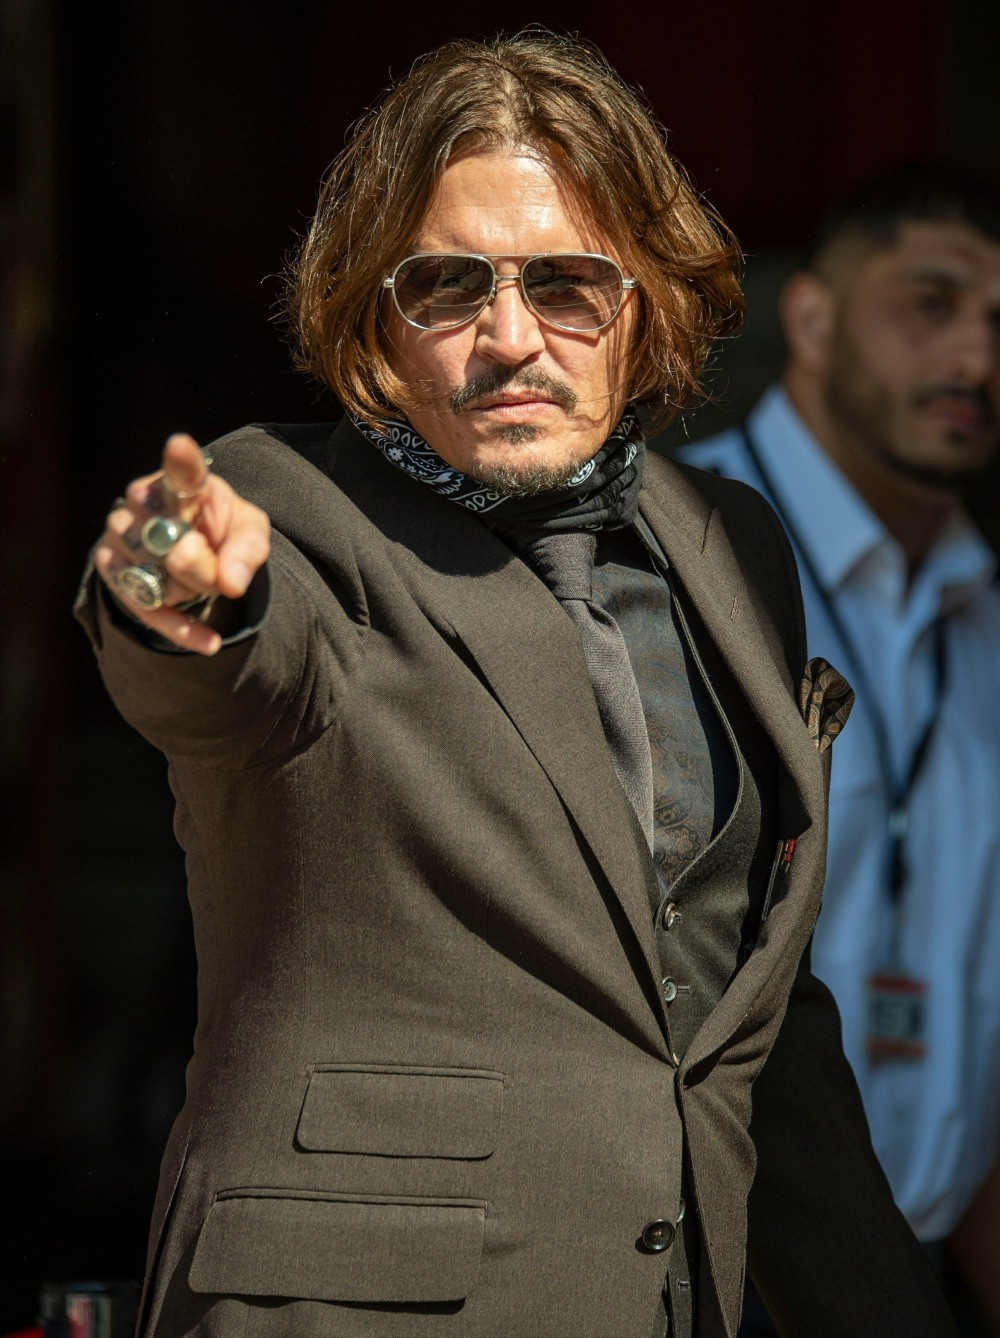 Actor Johnny Depp spotted at the High Court in London.